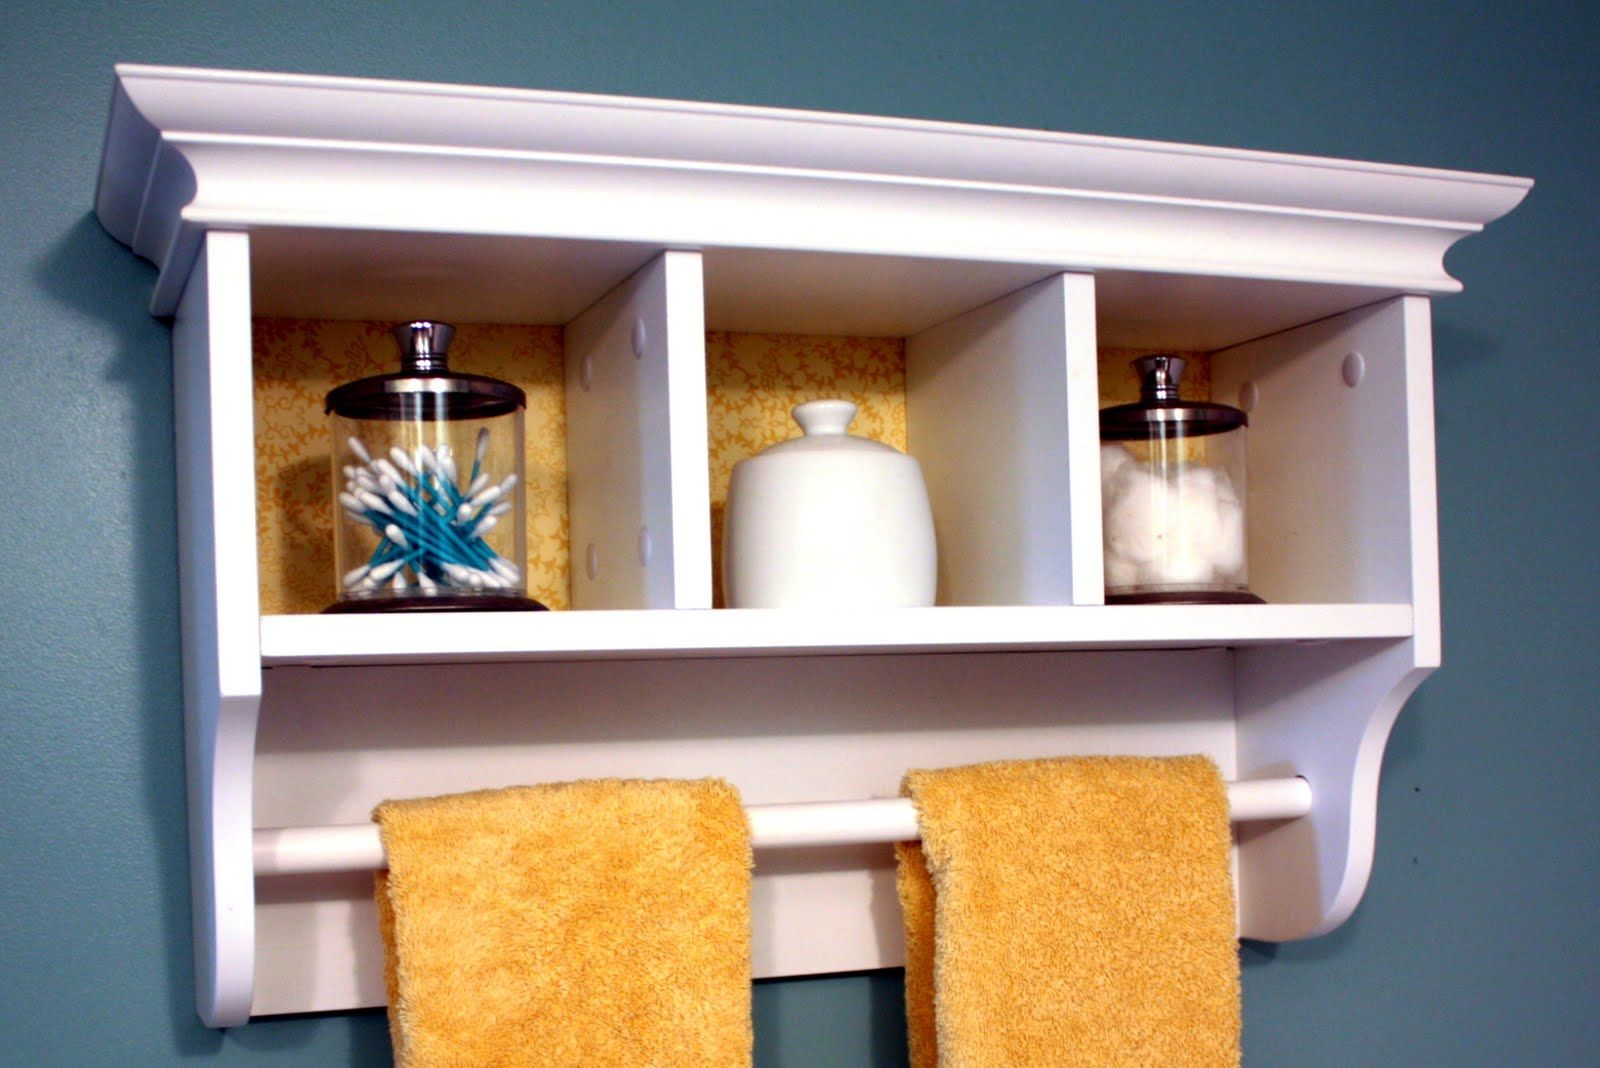 White Wall Shelf With Towel Bar | http://gagnant59.com | Pinterest ...